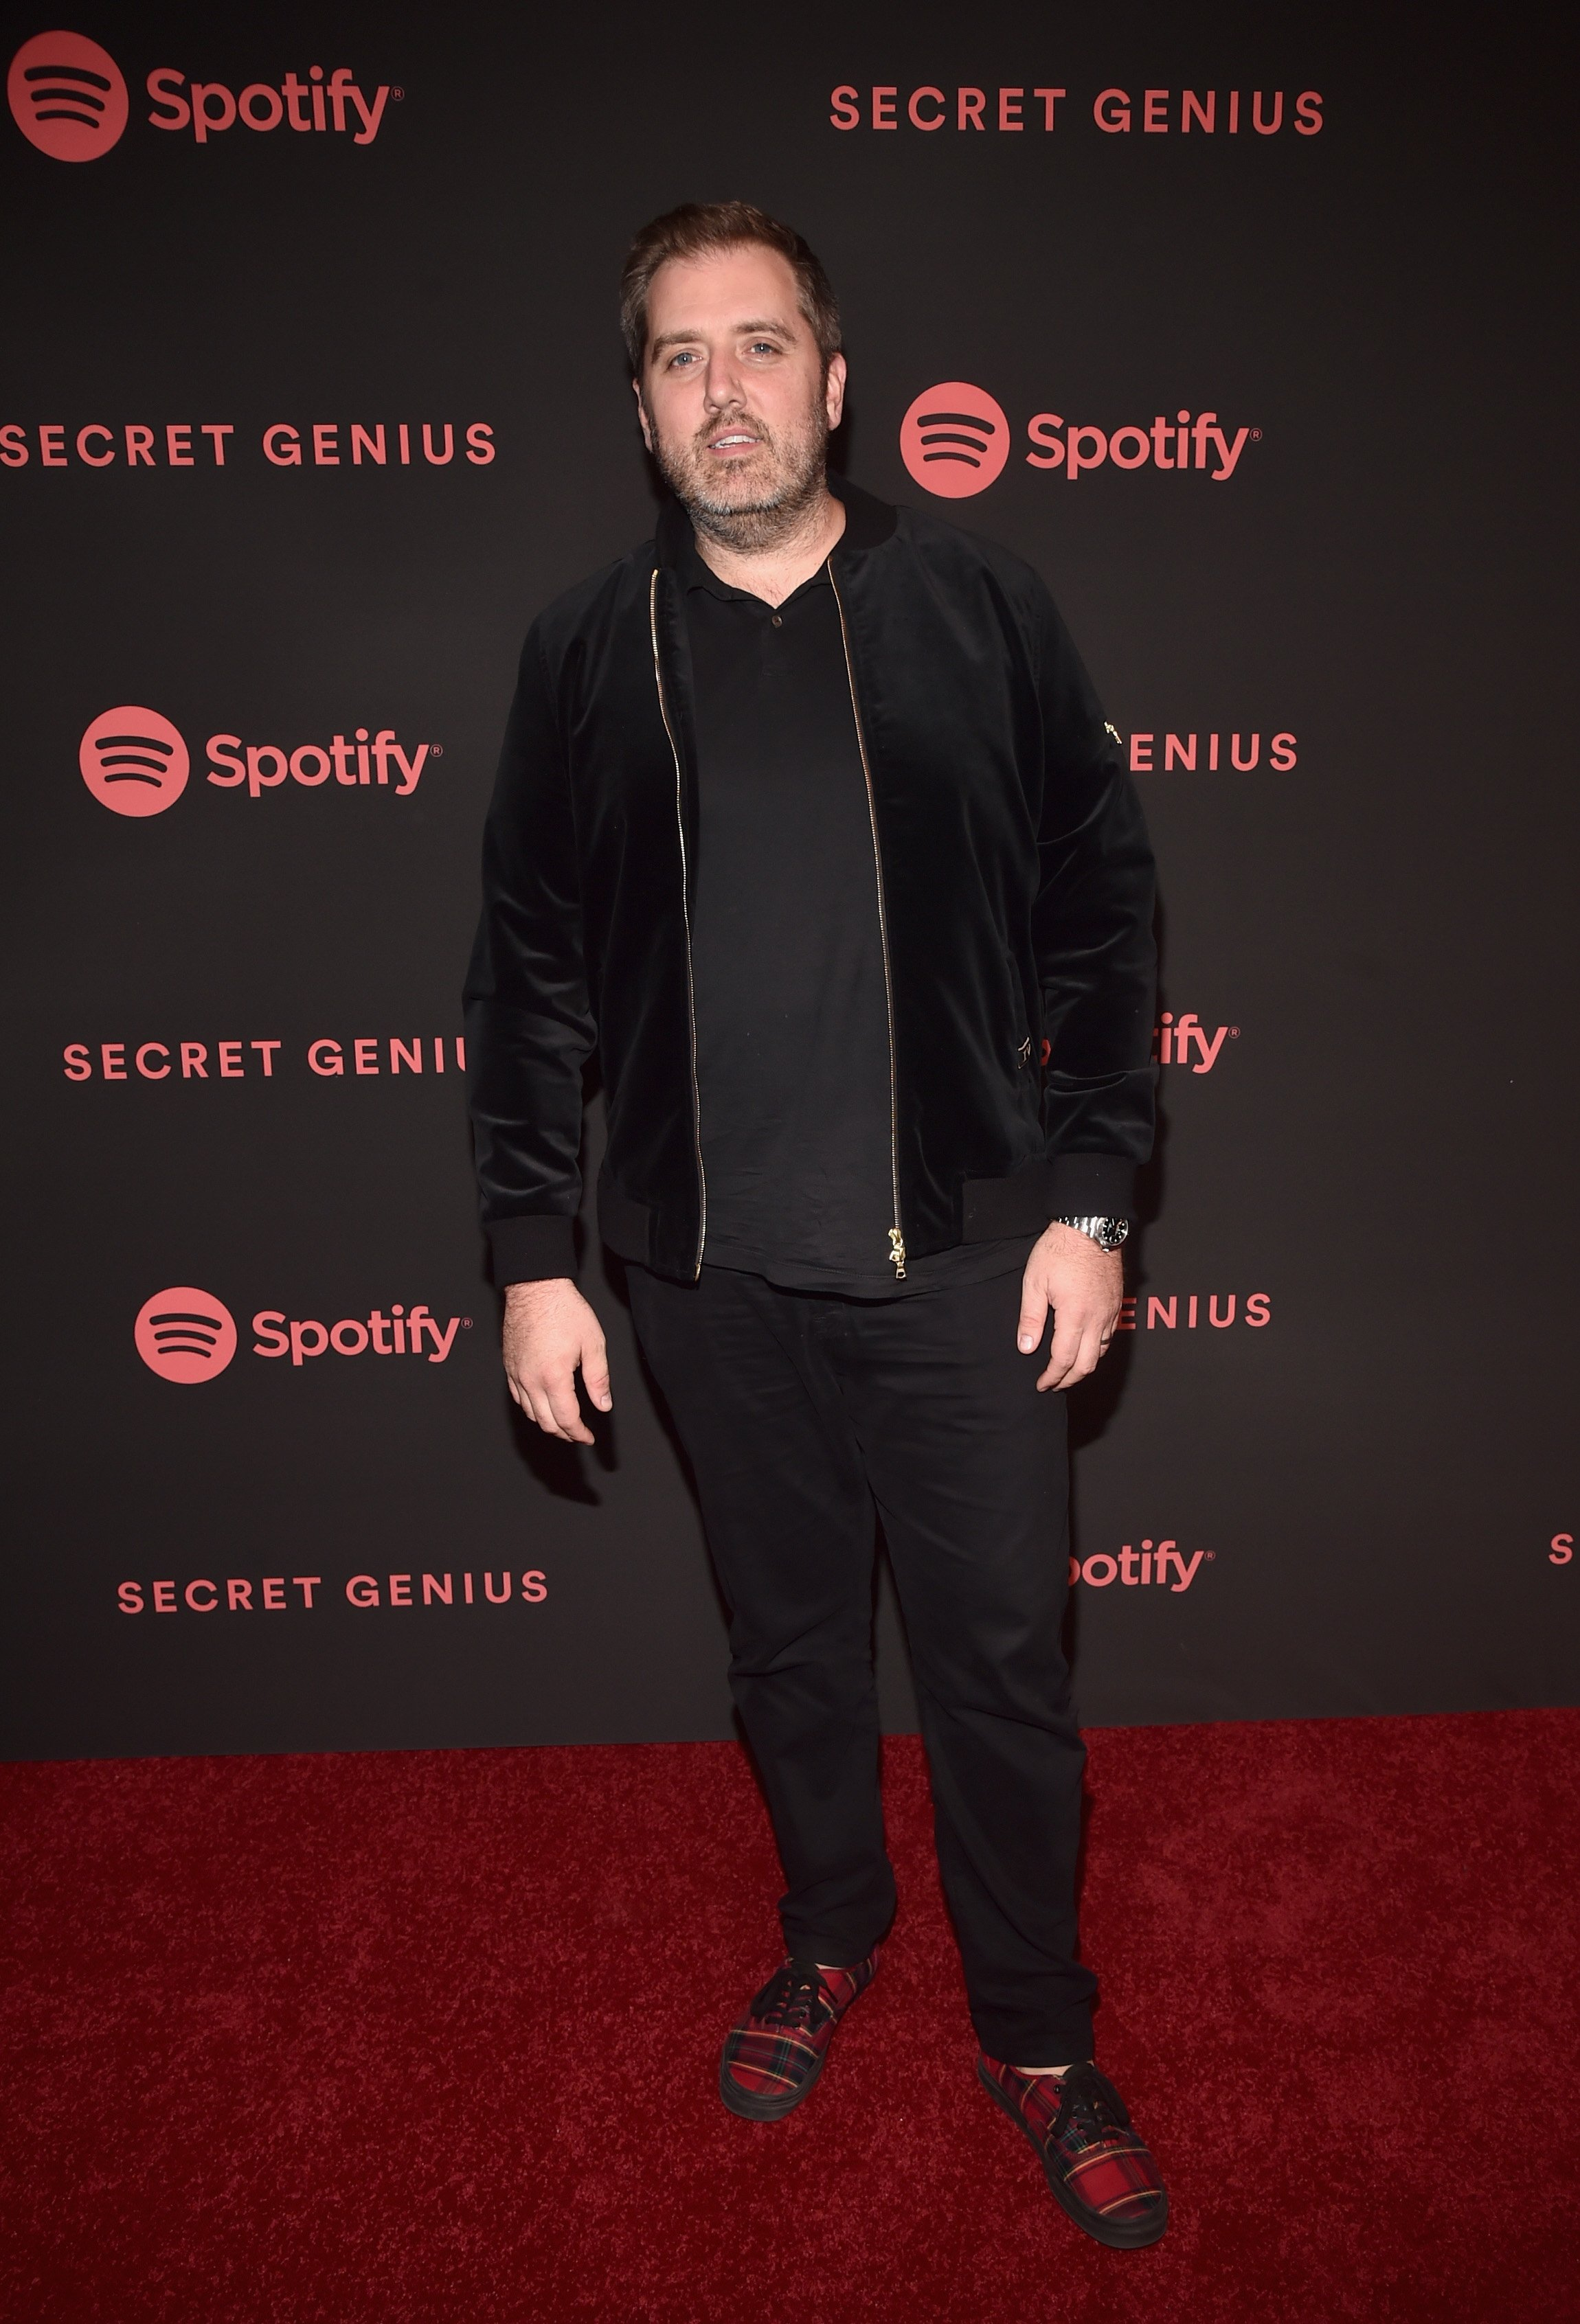 busbee attends Spotify's Secret Genius Awards hosted by NE-YO at The Theatre at Ace Hotel on November 16, 2018 in Los Angeles, California | Photo: Getty Images